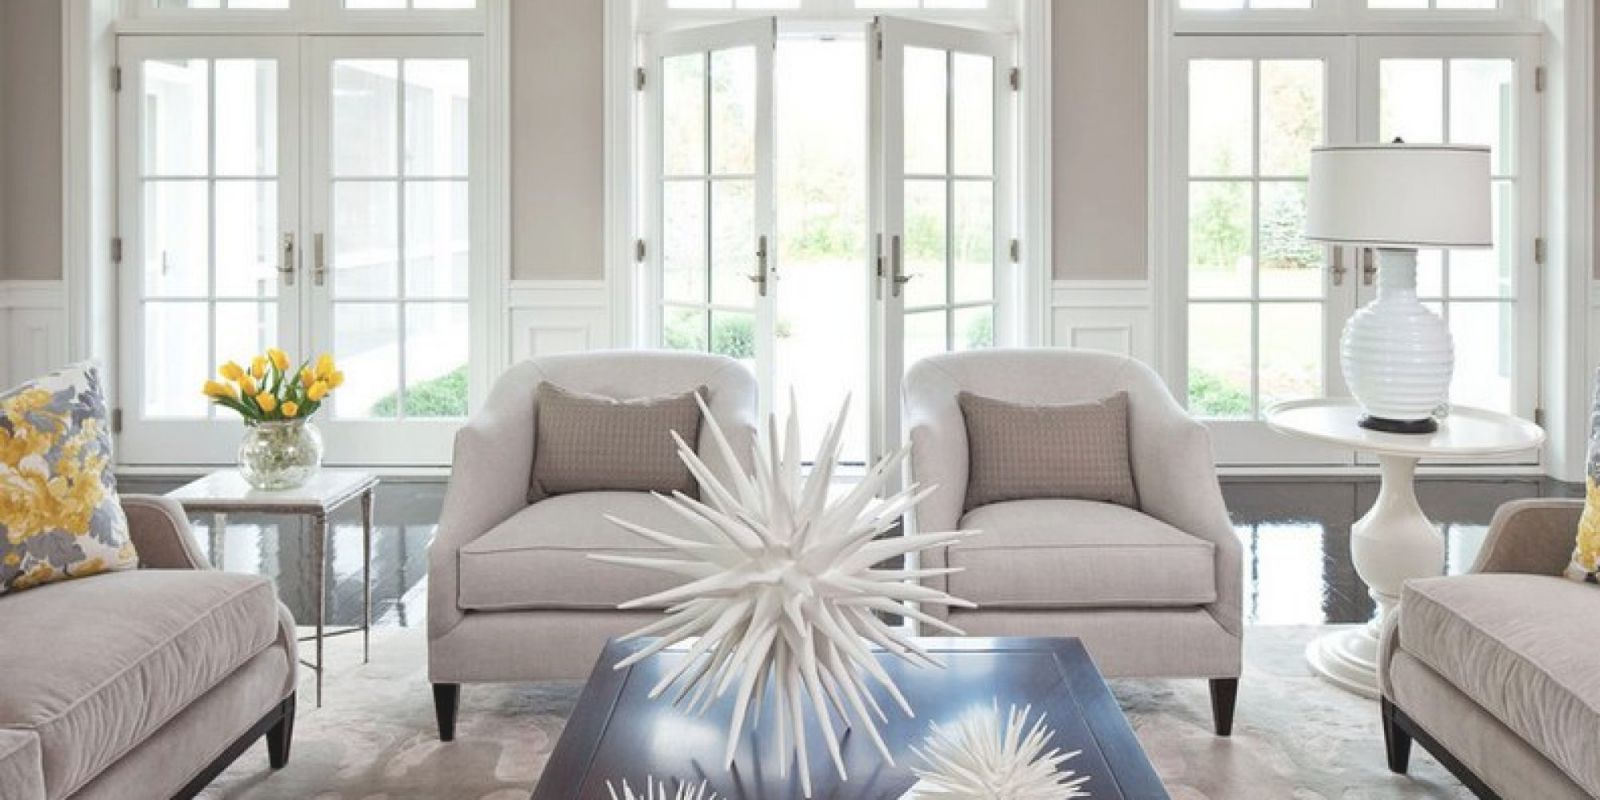 The Best Neutral Paint Colors Thatll Work In Any Home No with regard to 15 Ideas Gallery For Best Neutral Paint Colors For Living Room